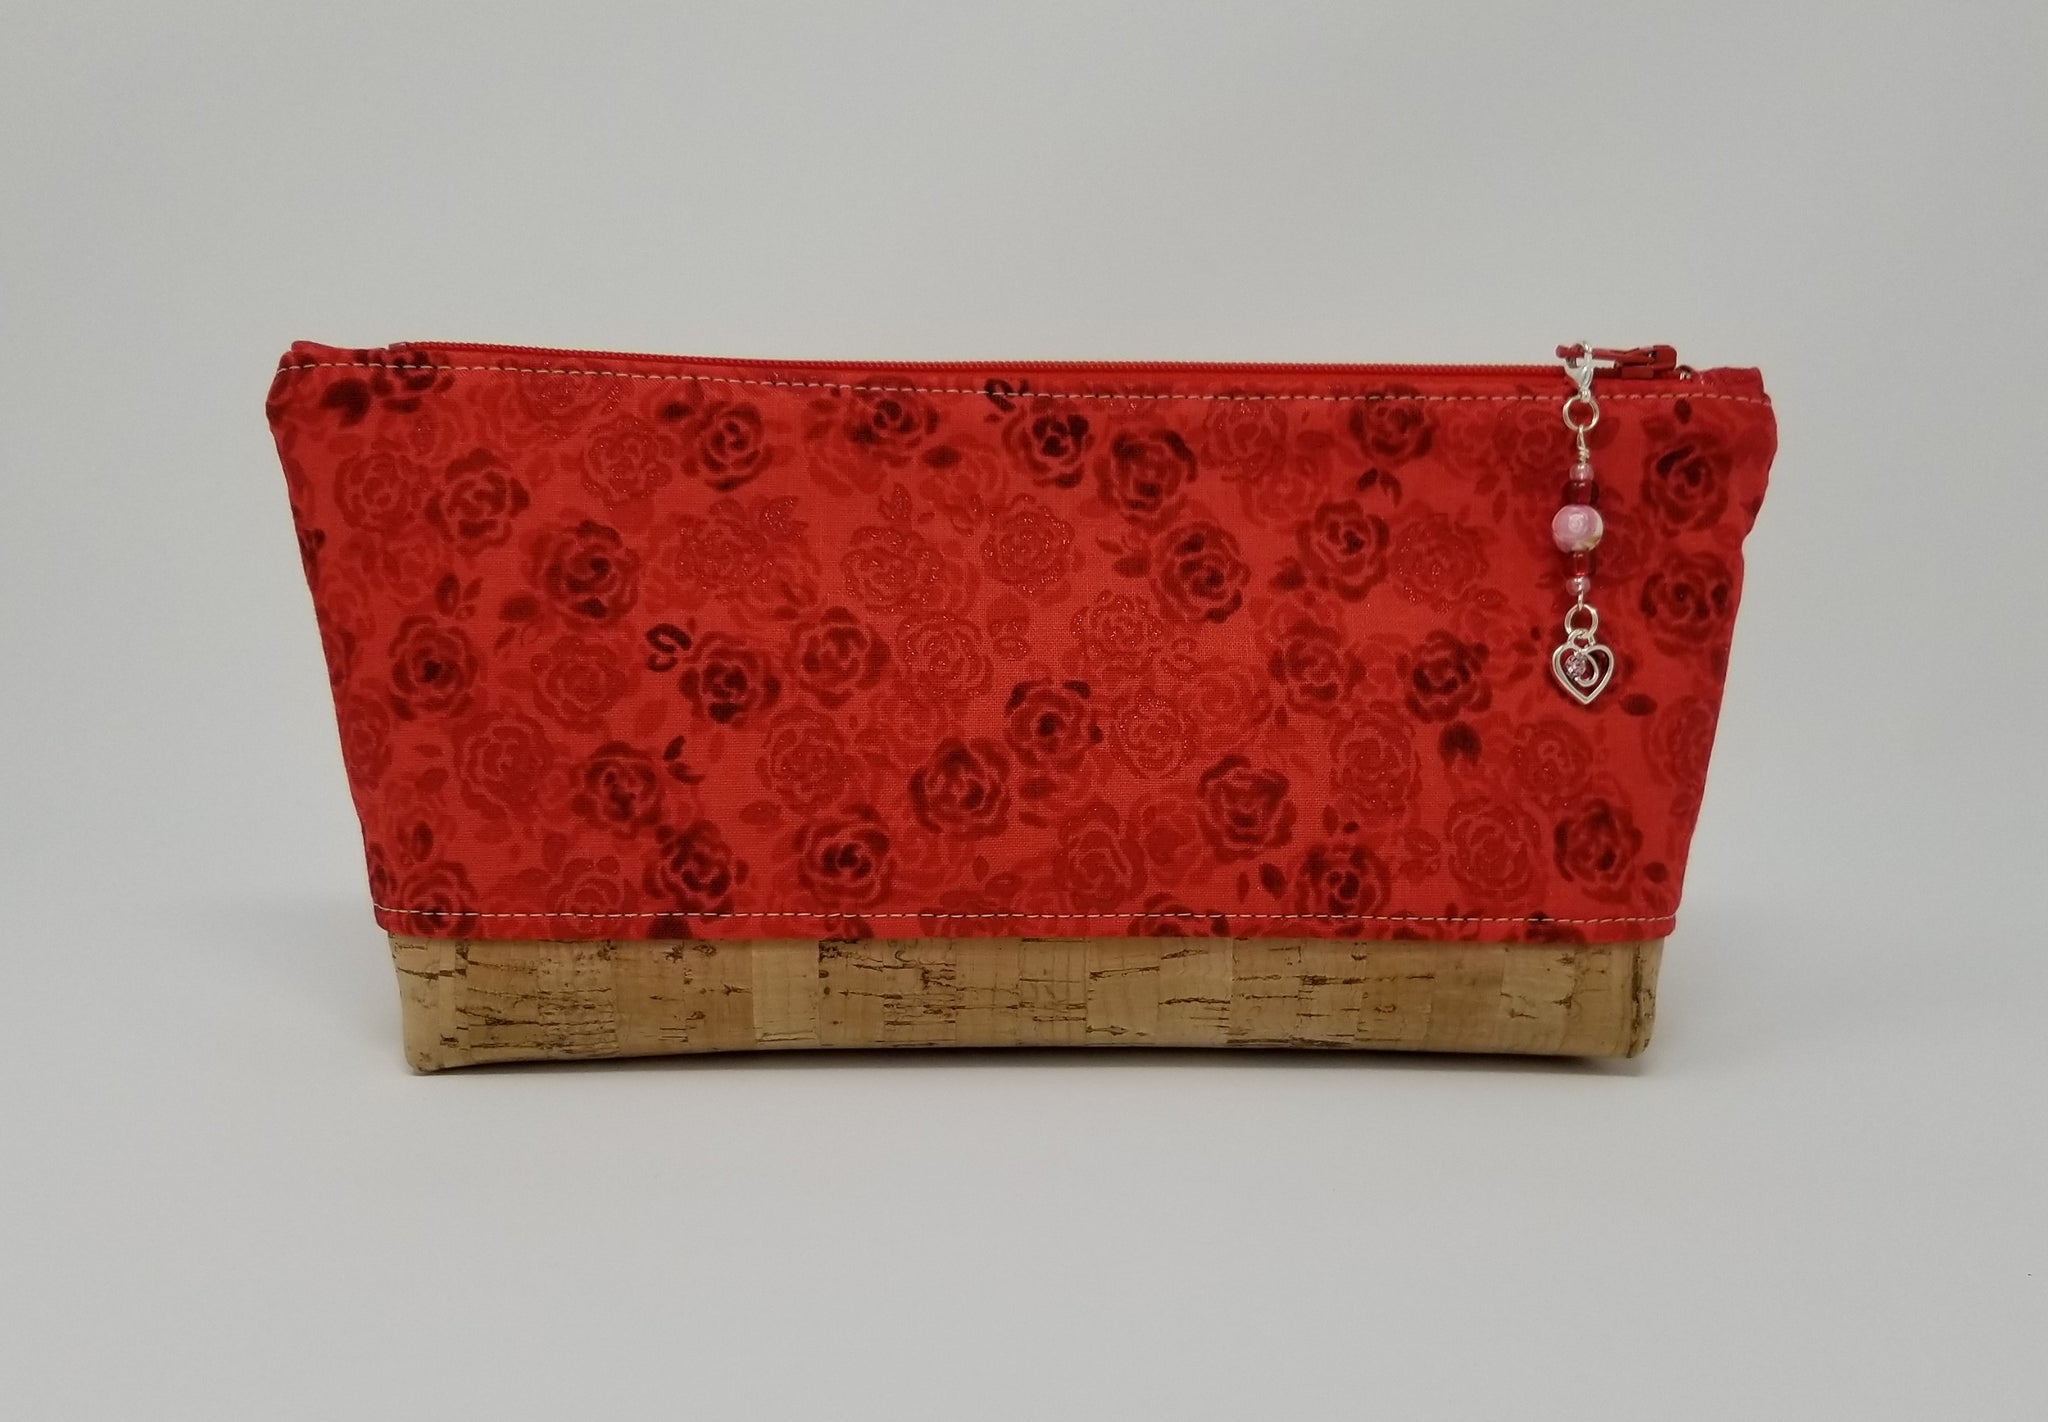 Essential Oil Bag - Red Roses with natural cork base